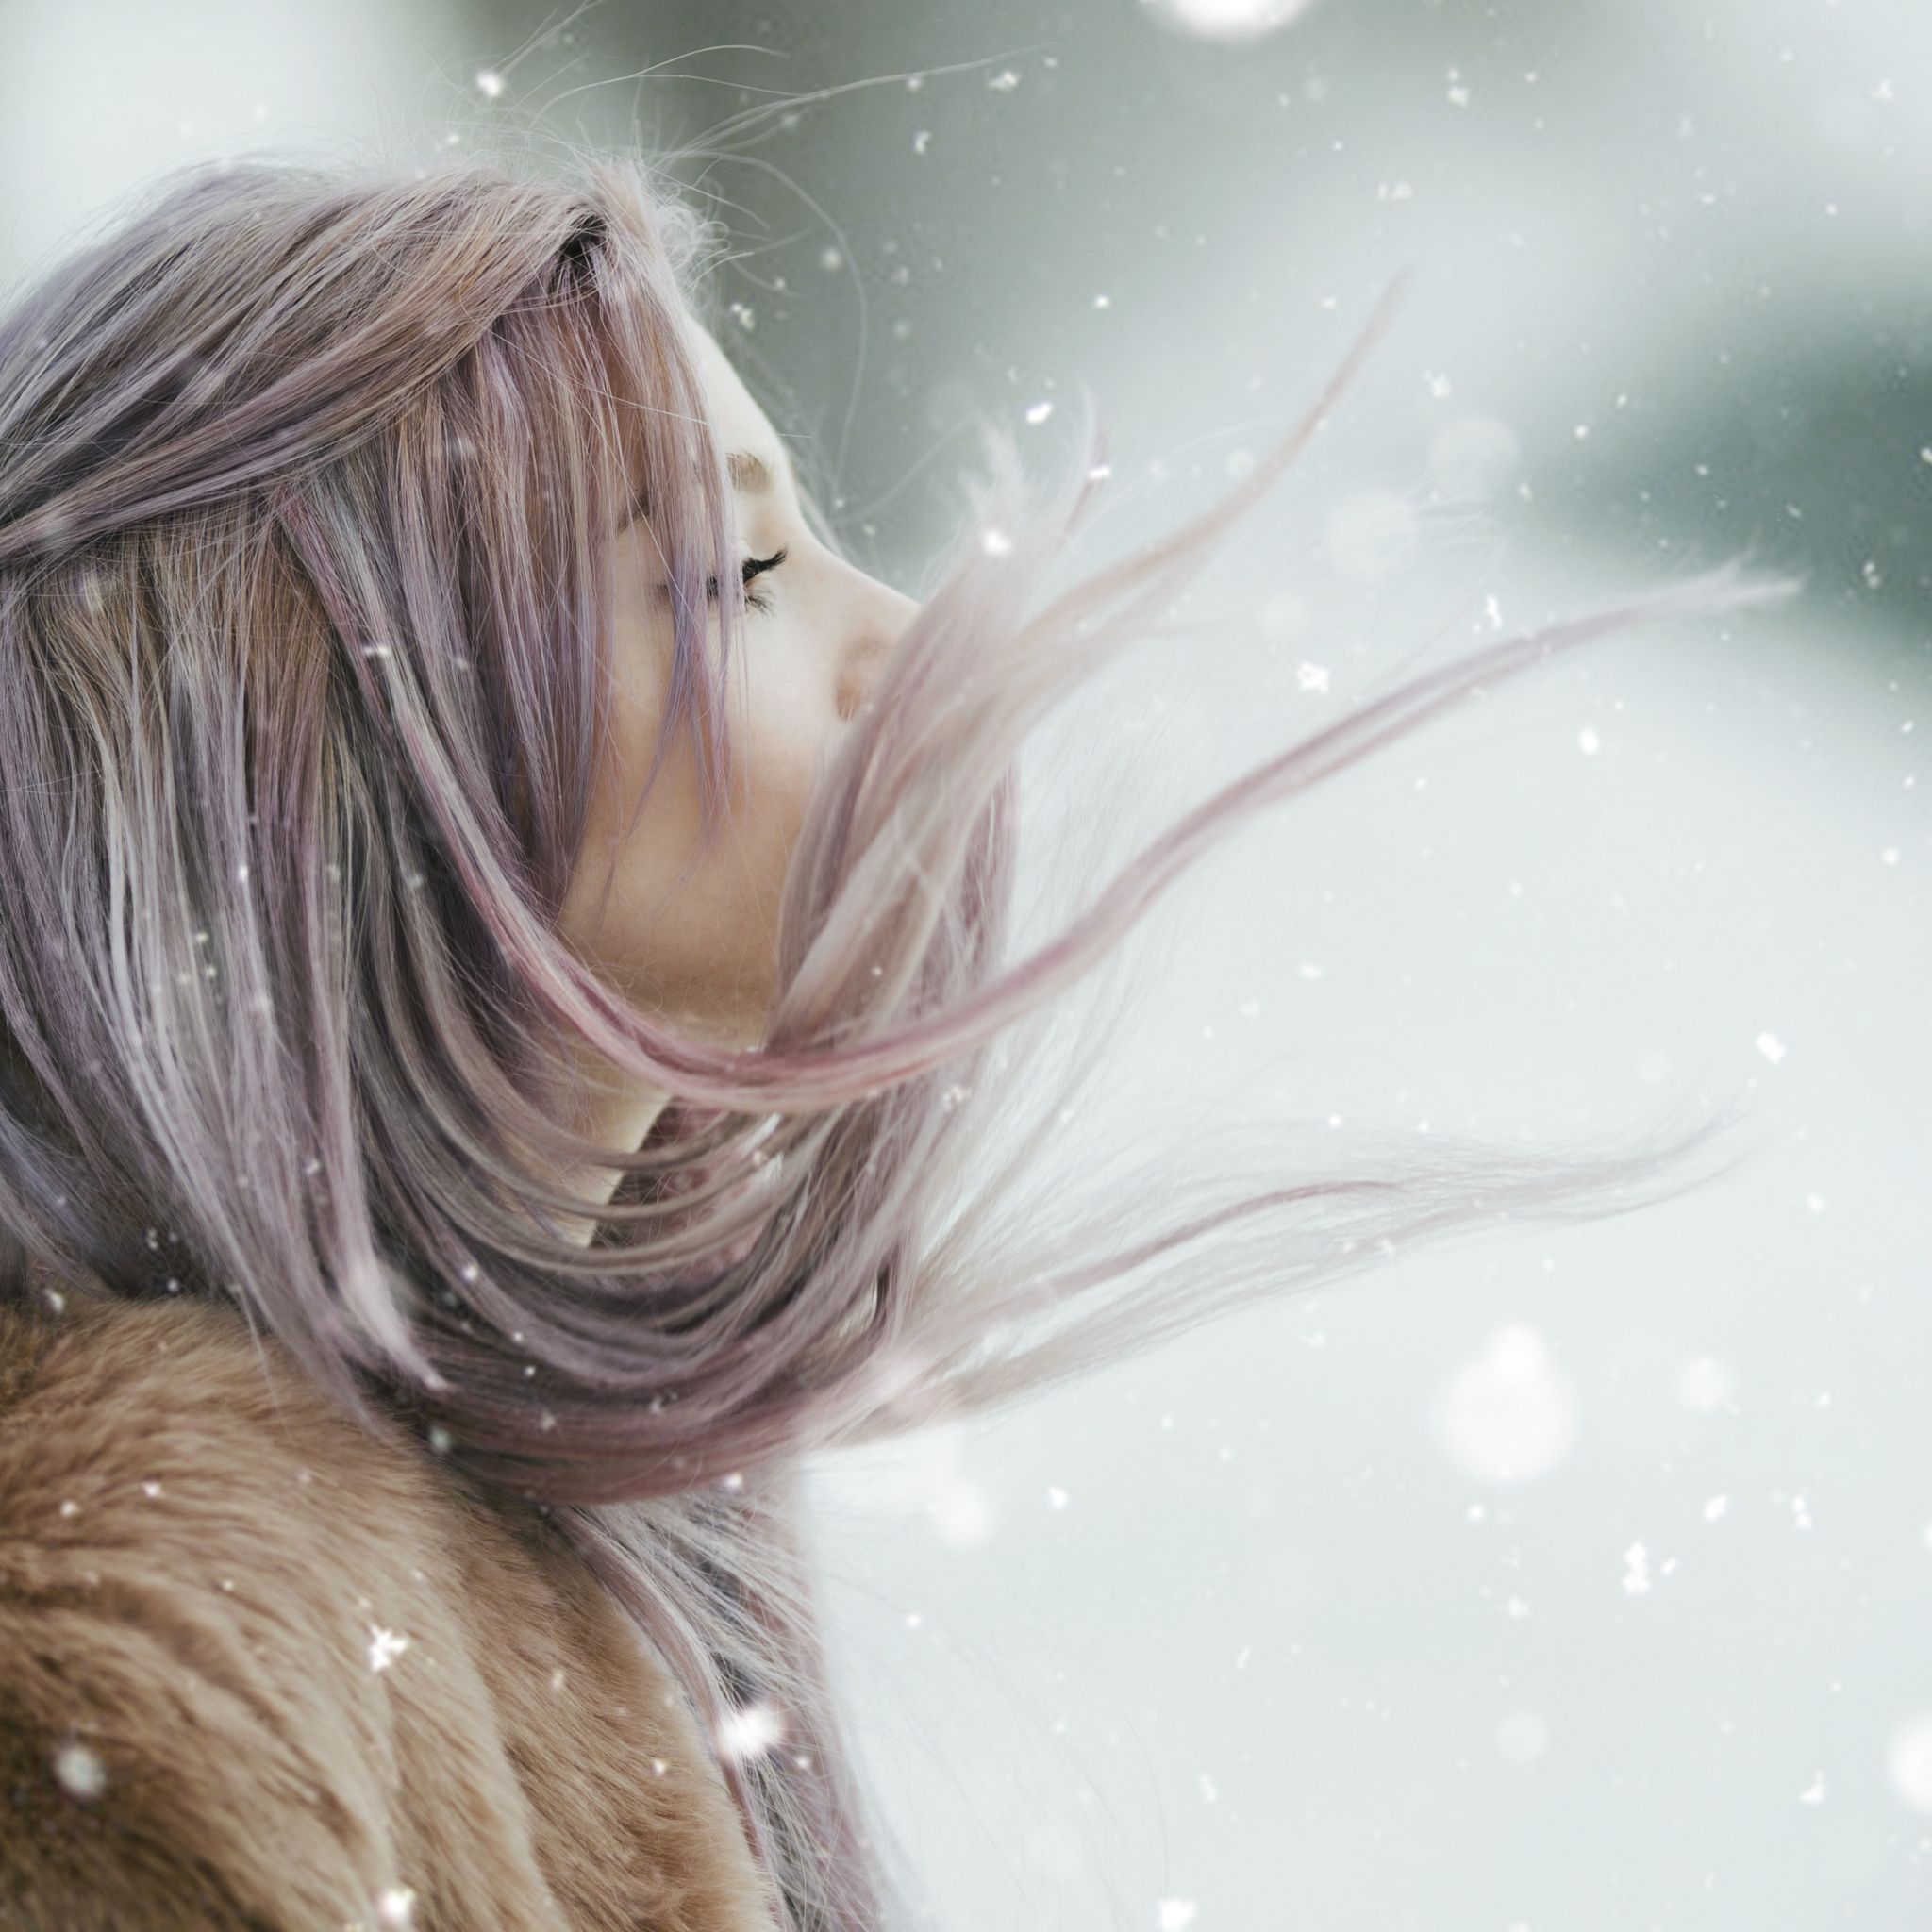 Pastely - Girl with pink hair in snow.